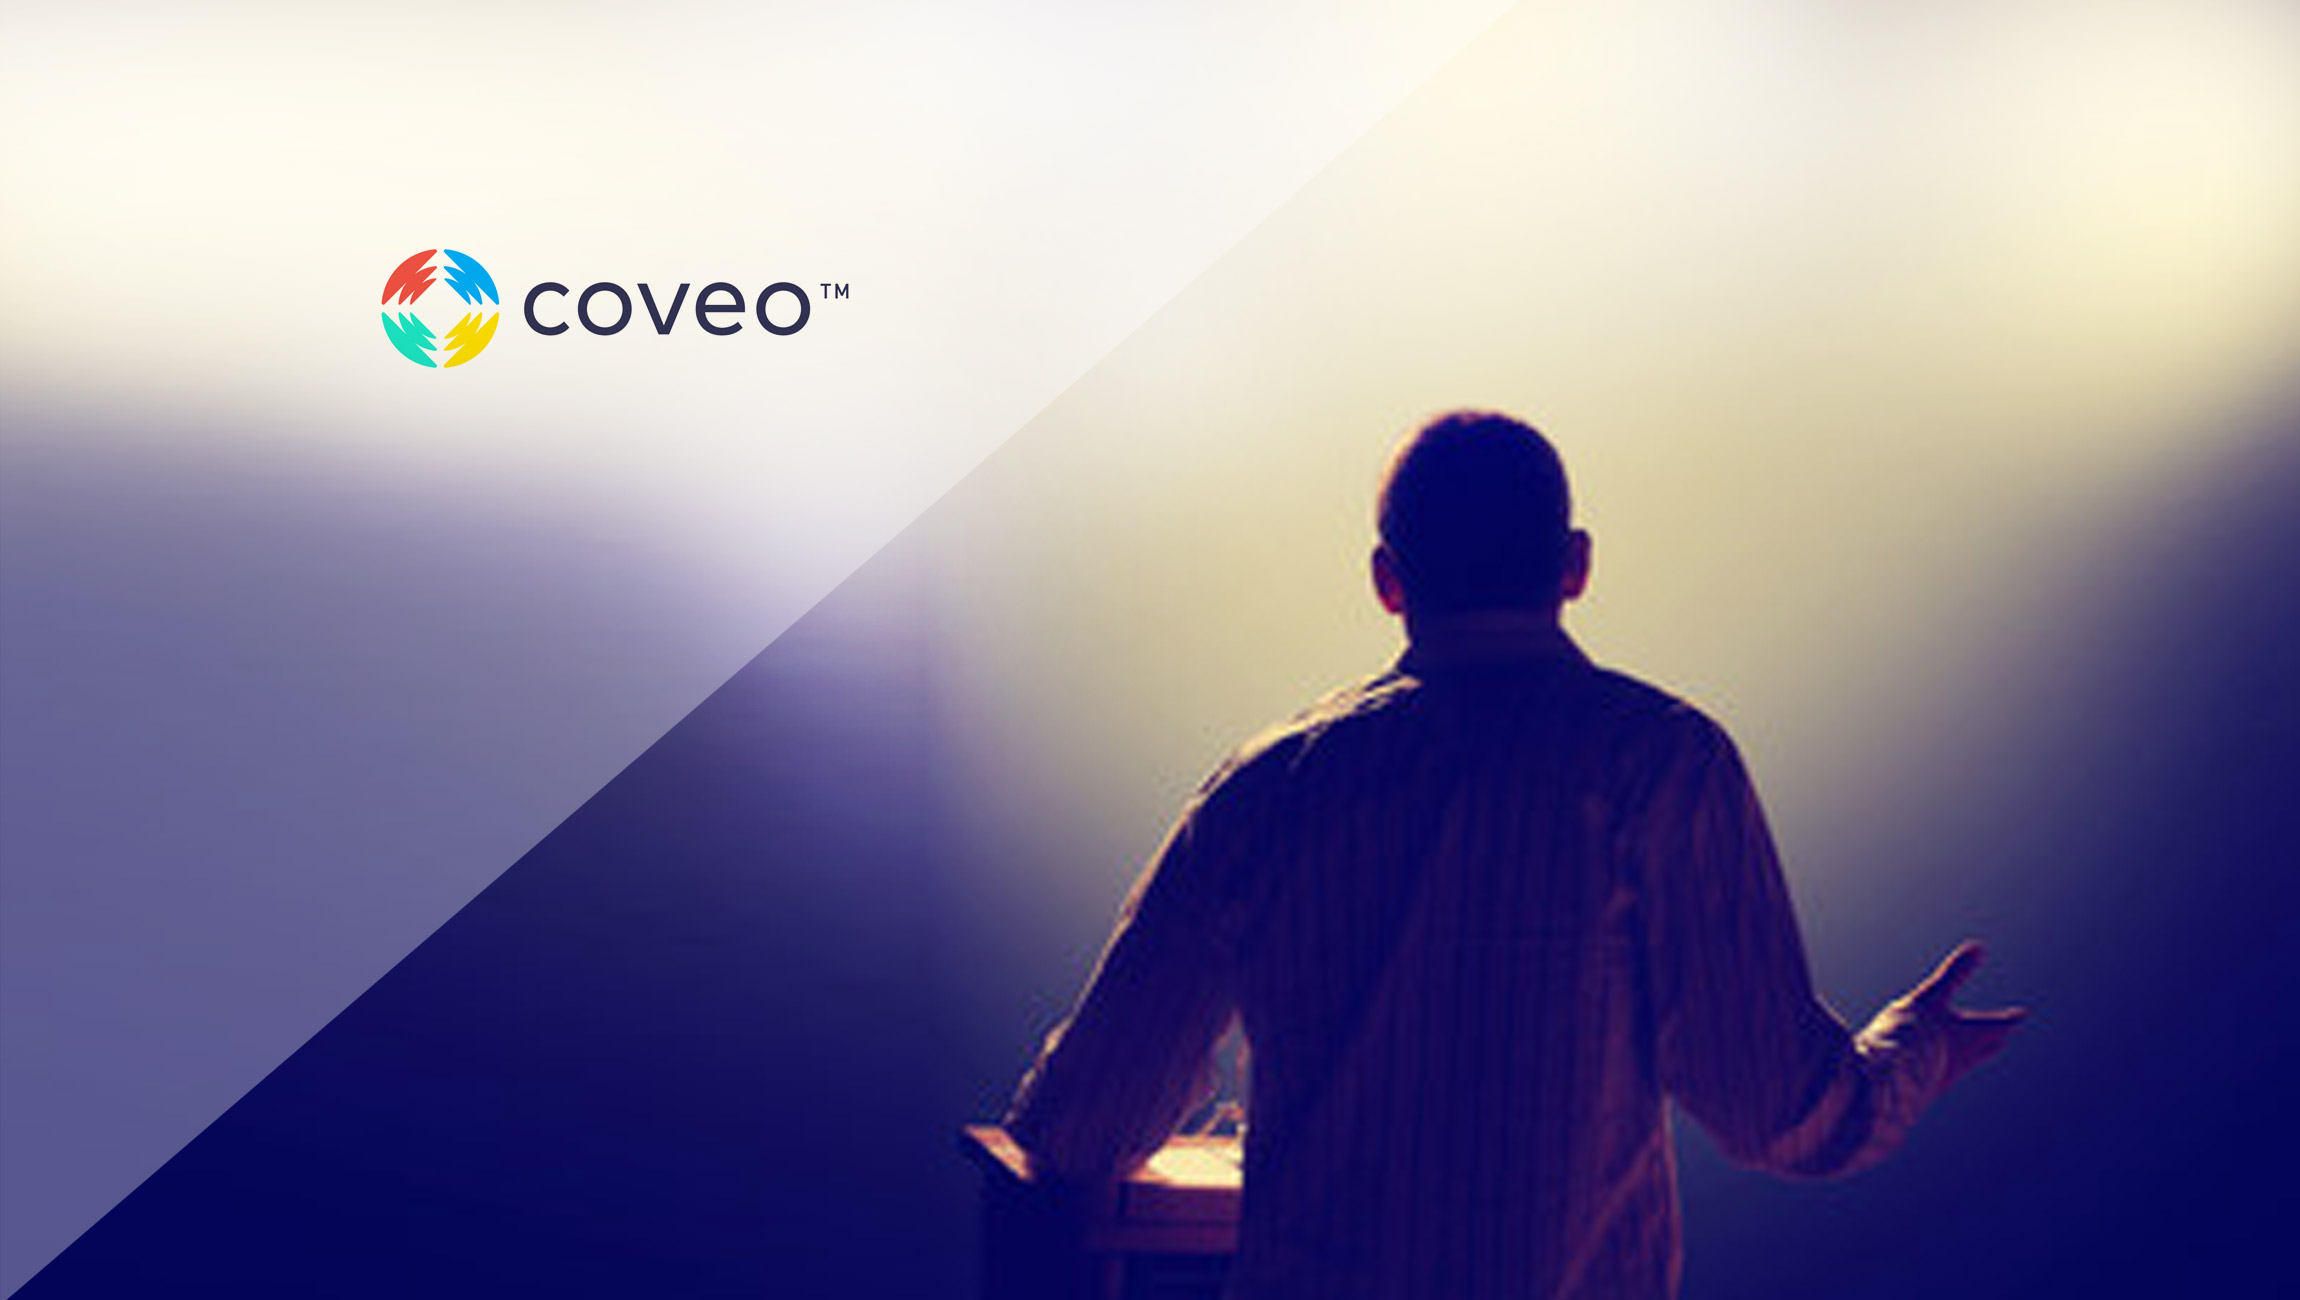 Montréal's Coveo Announces Ray Wang, Brian Solis, Rachael Powell As Keynote Speakers At Relevance 360 On March 25